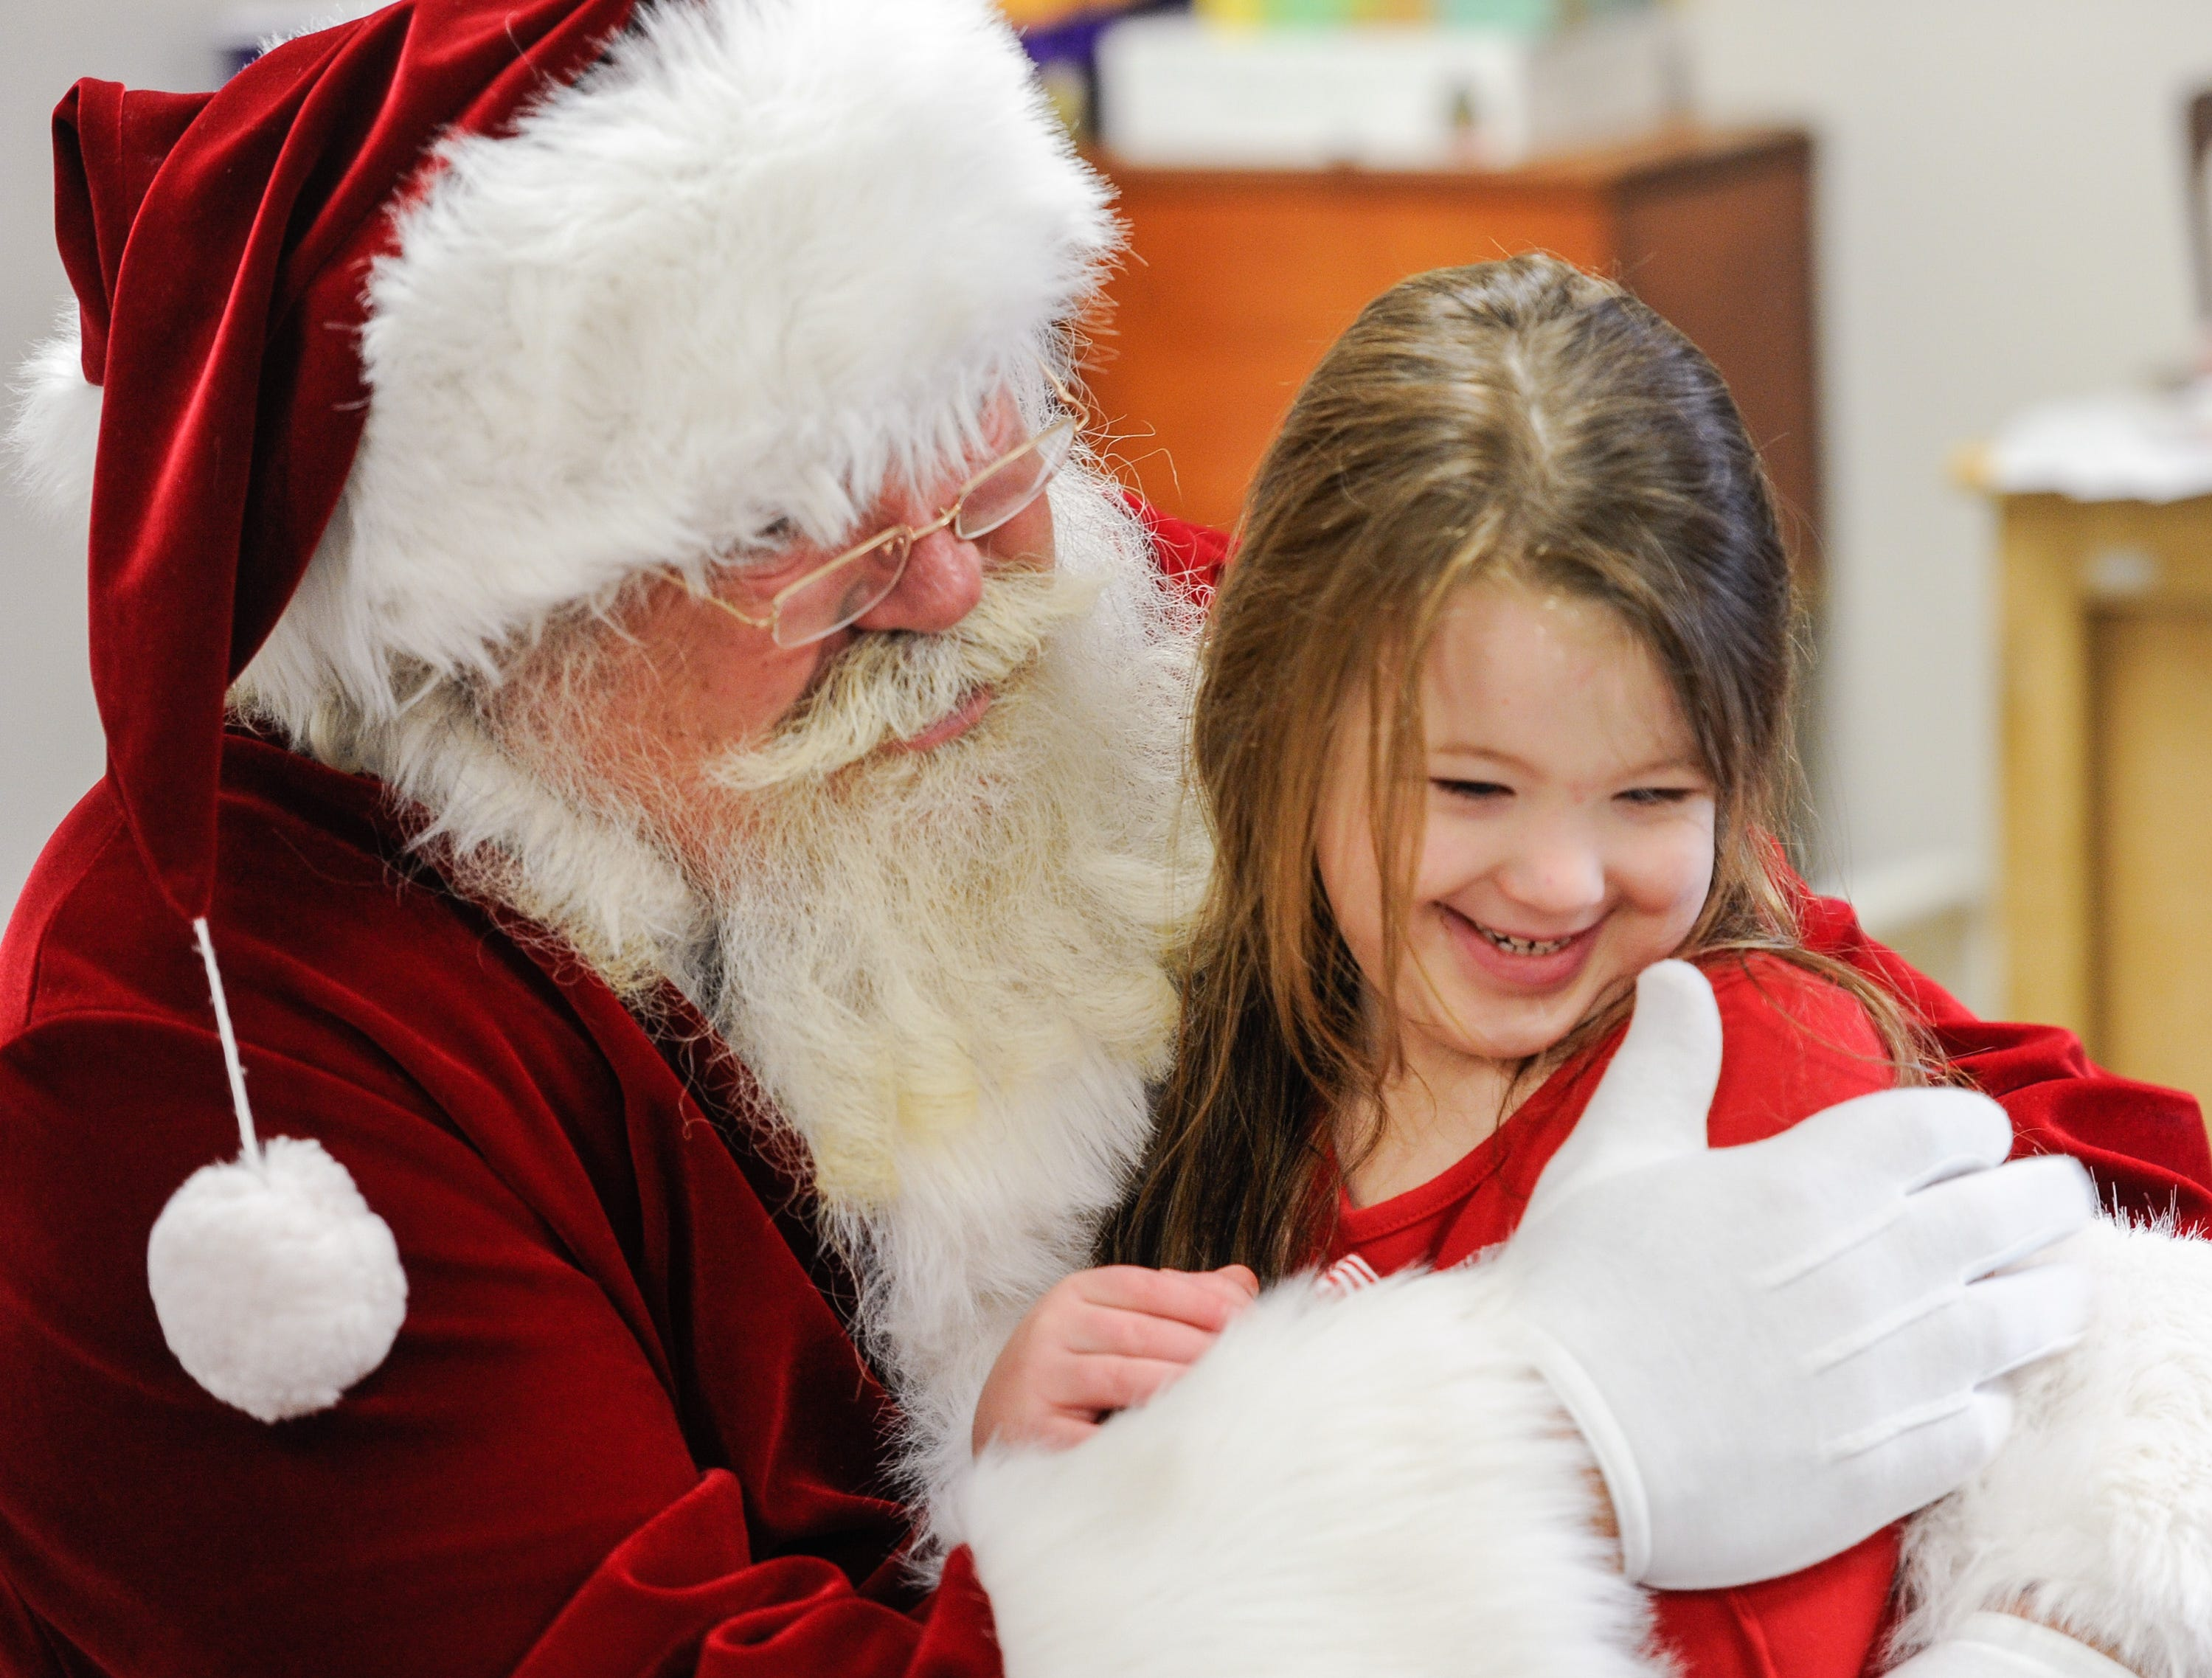 Clara Cater, 5, receives a hearty hug from Santa as he visits the preschool kids at the Easter Seals Rehabilitation Center in Evansville Tuesday morning, December 22, 2015.